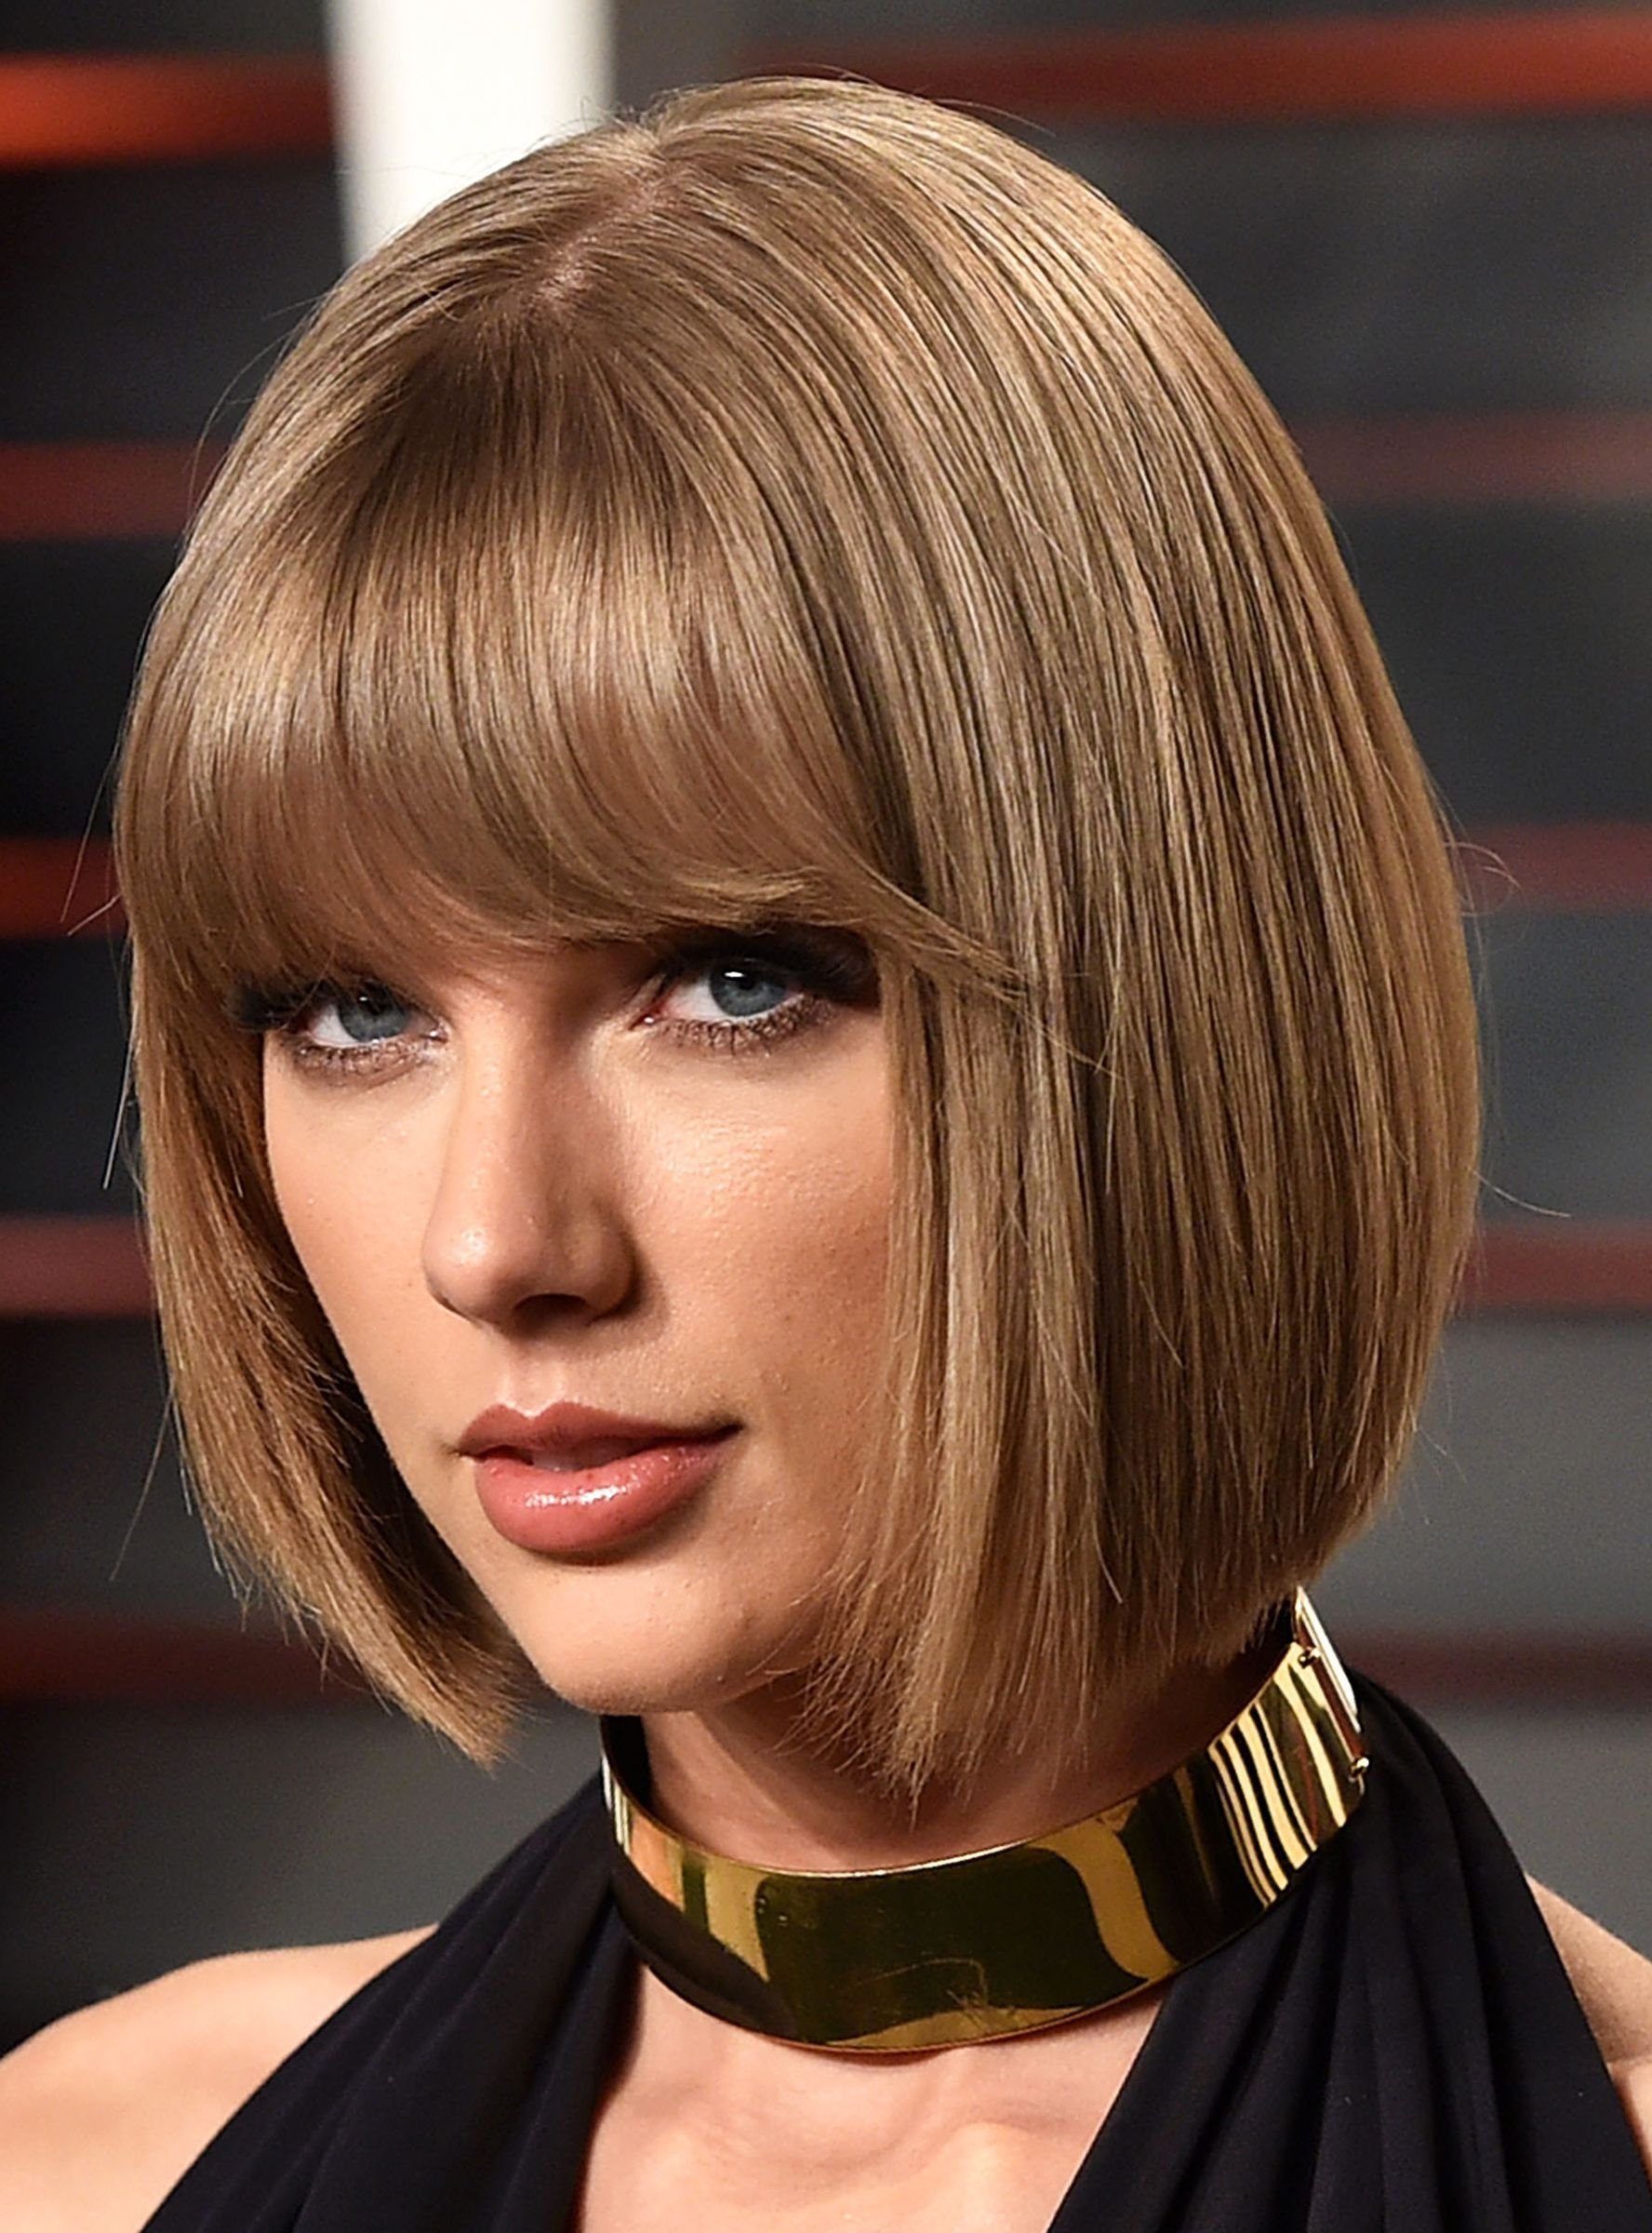 Taylor Swift Approves Of This Punny Newscast Inspired By Reputation Http R29 Co 2mndypd Blunt Bob Hairstyles Taylor Swift Hair Bob Hairstyles